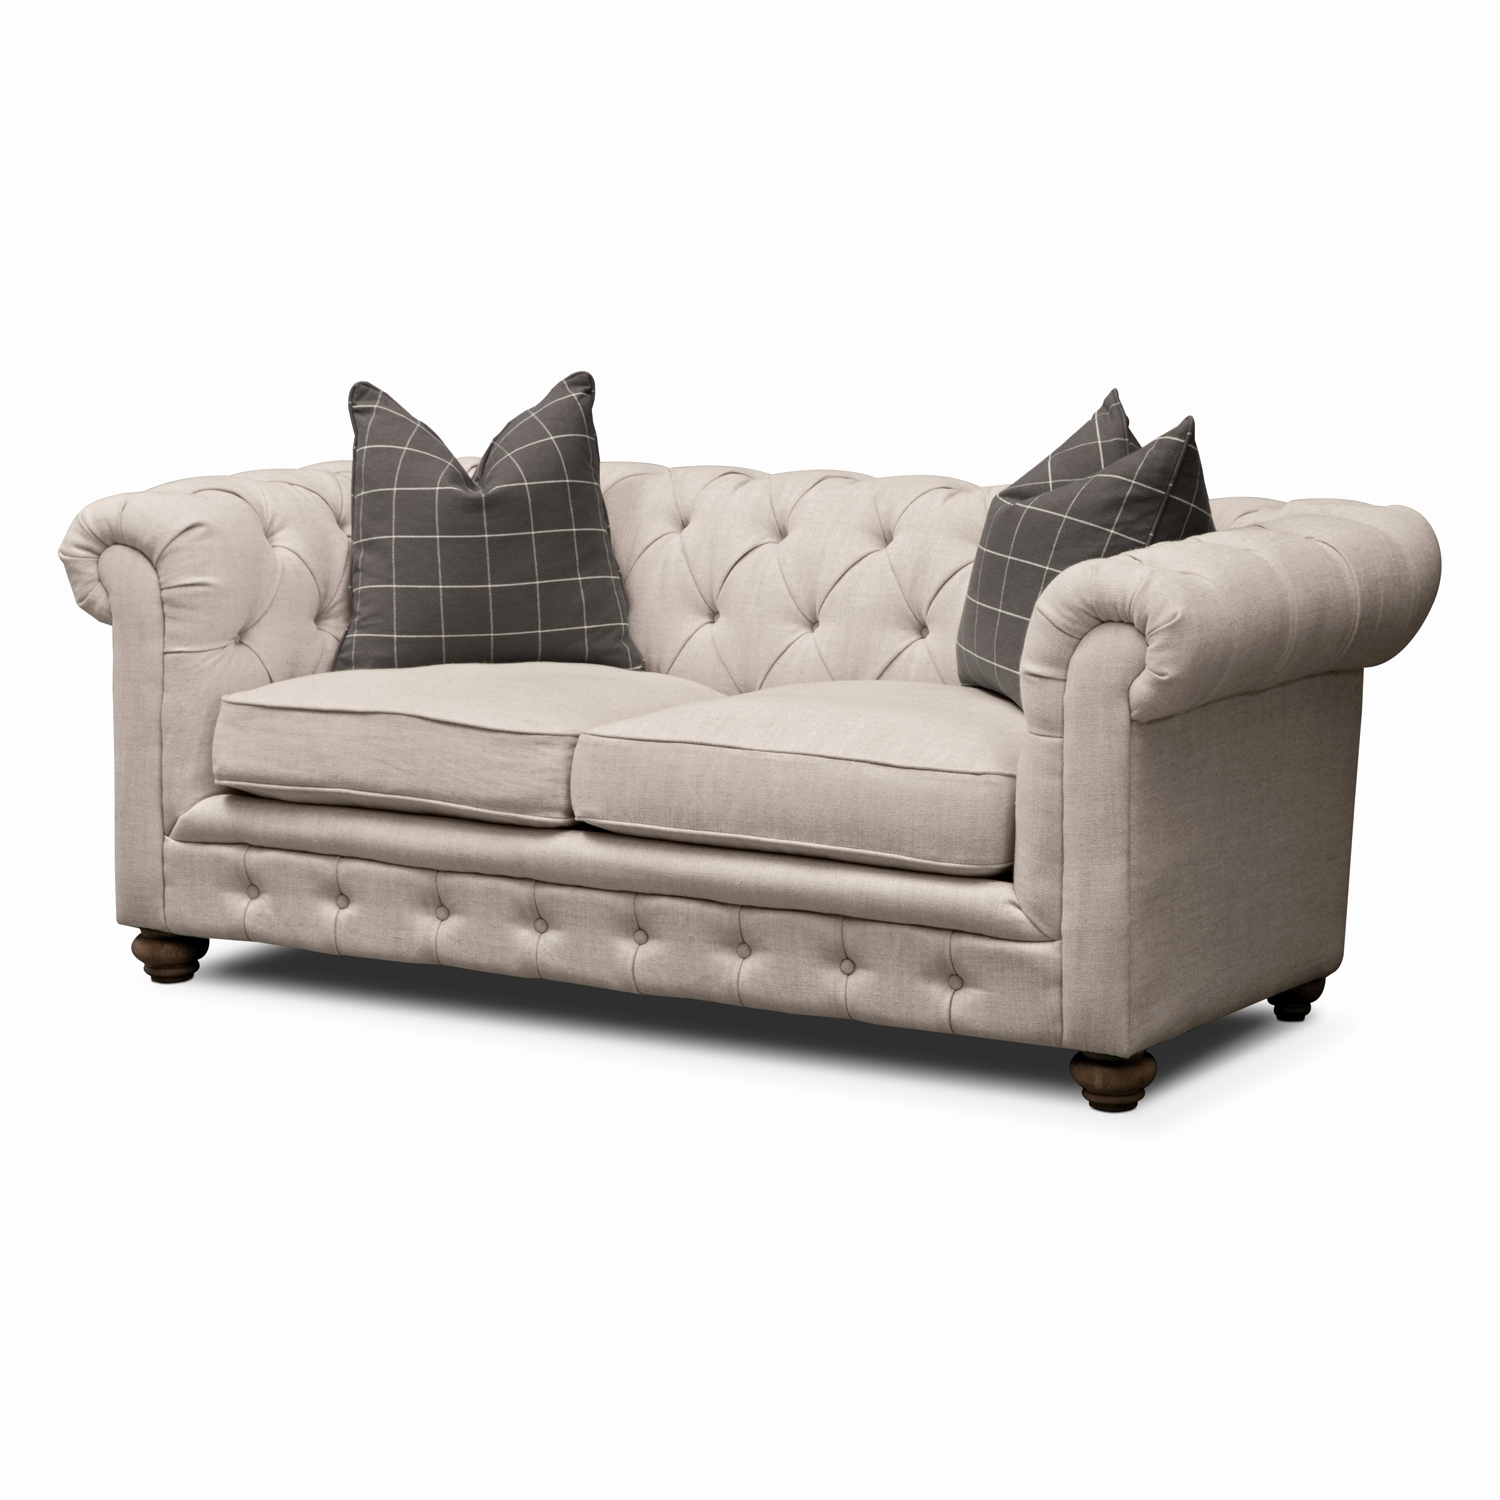 Favorite Bryden Sofa Slate Value City Furniture And Mattresses For Sofas Within Value City Sofas (View 4 of 15)